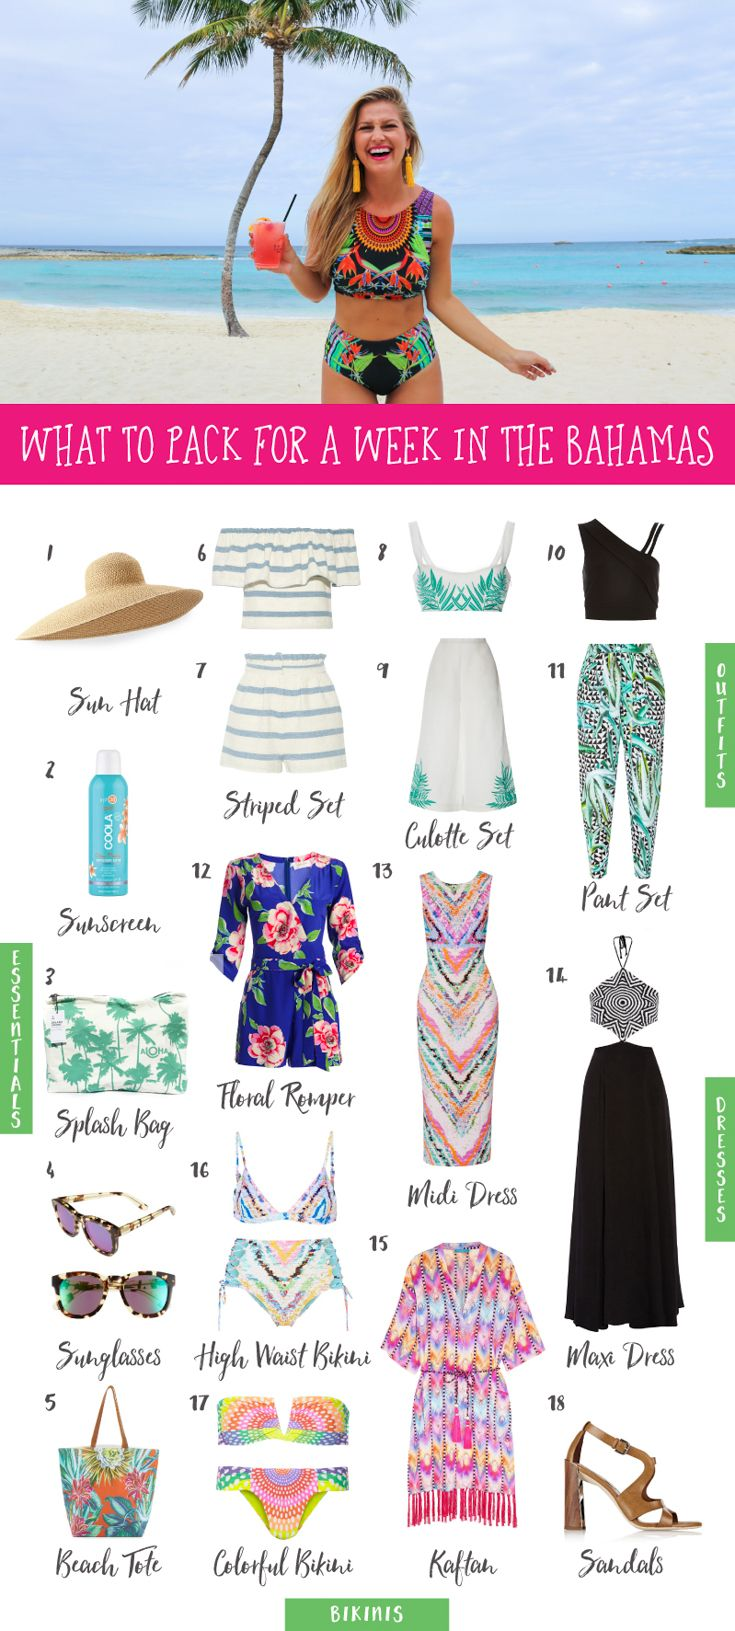 What To Pack For A Week In The Bahamas Travel Packing